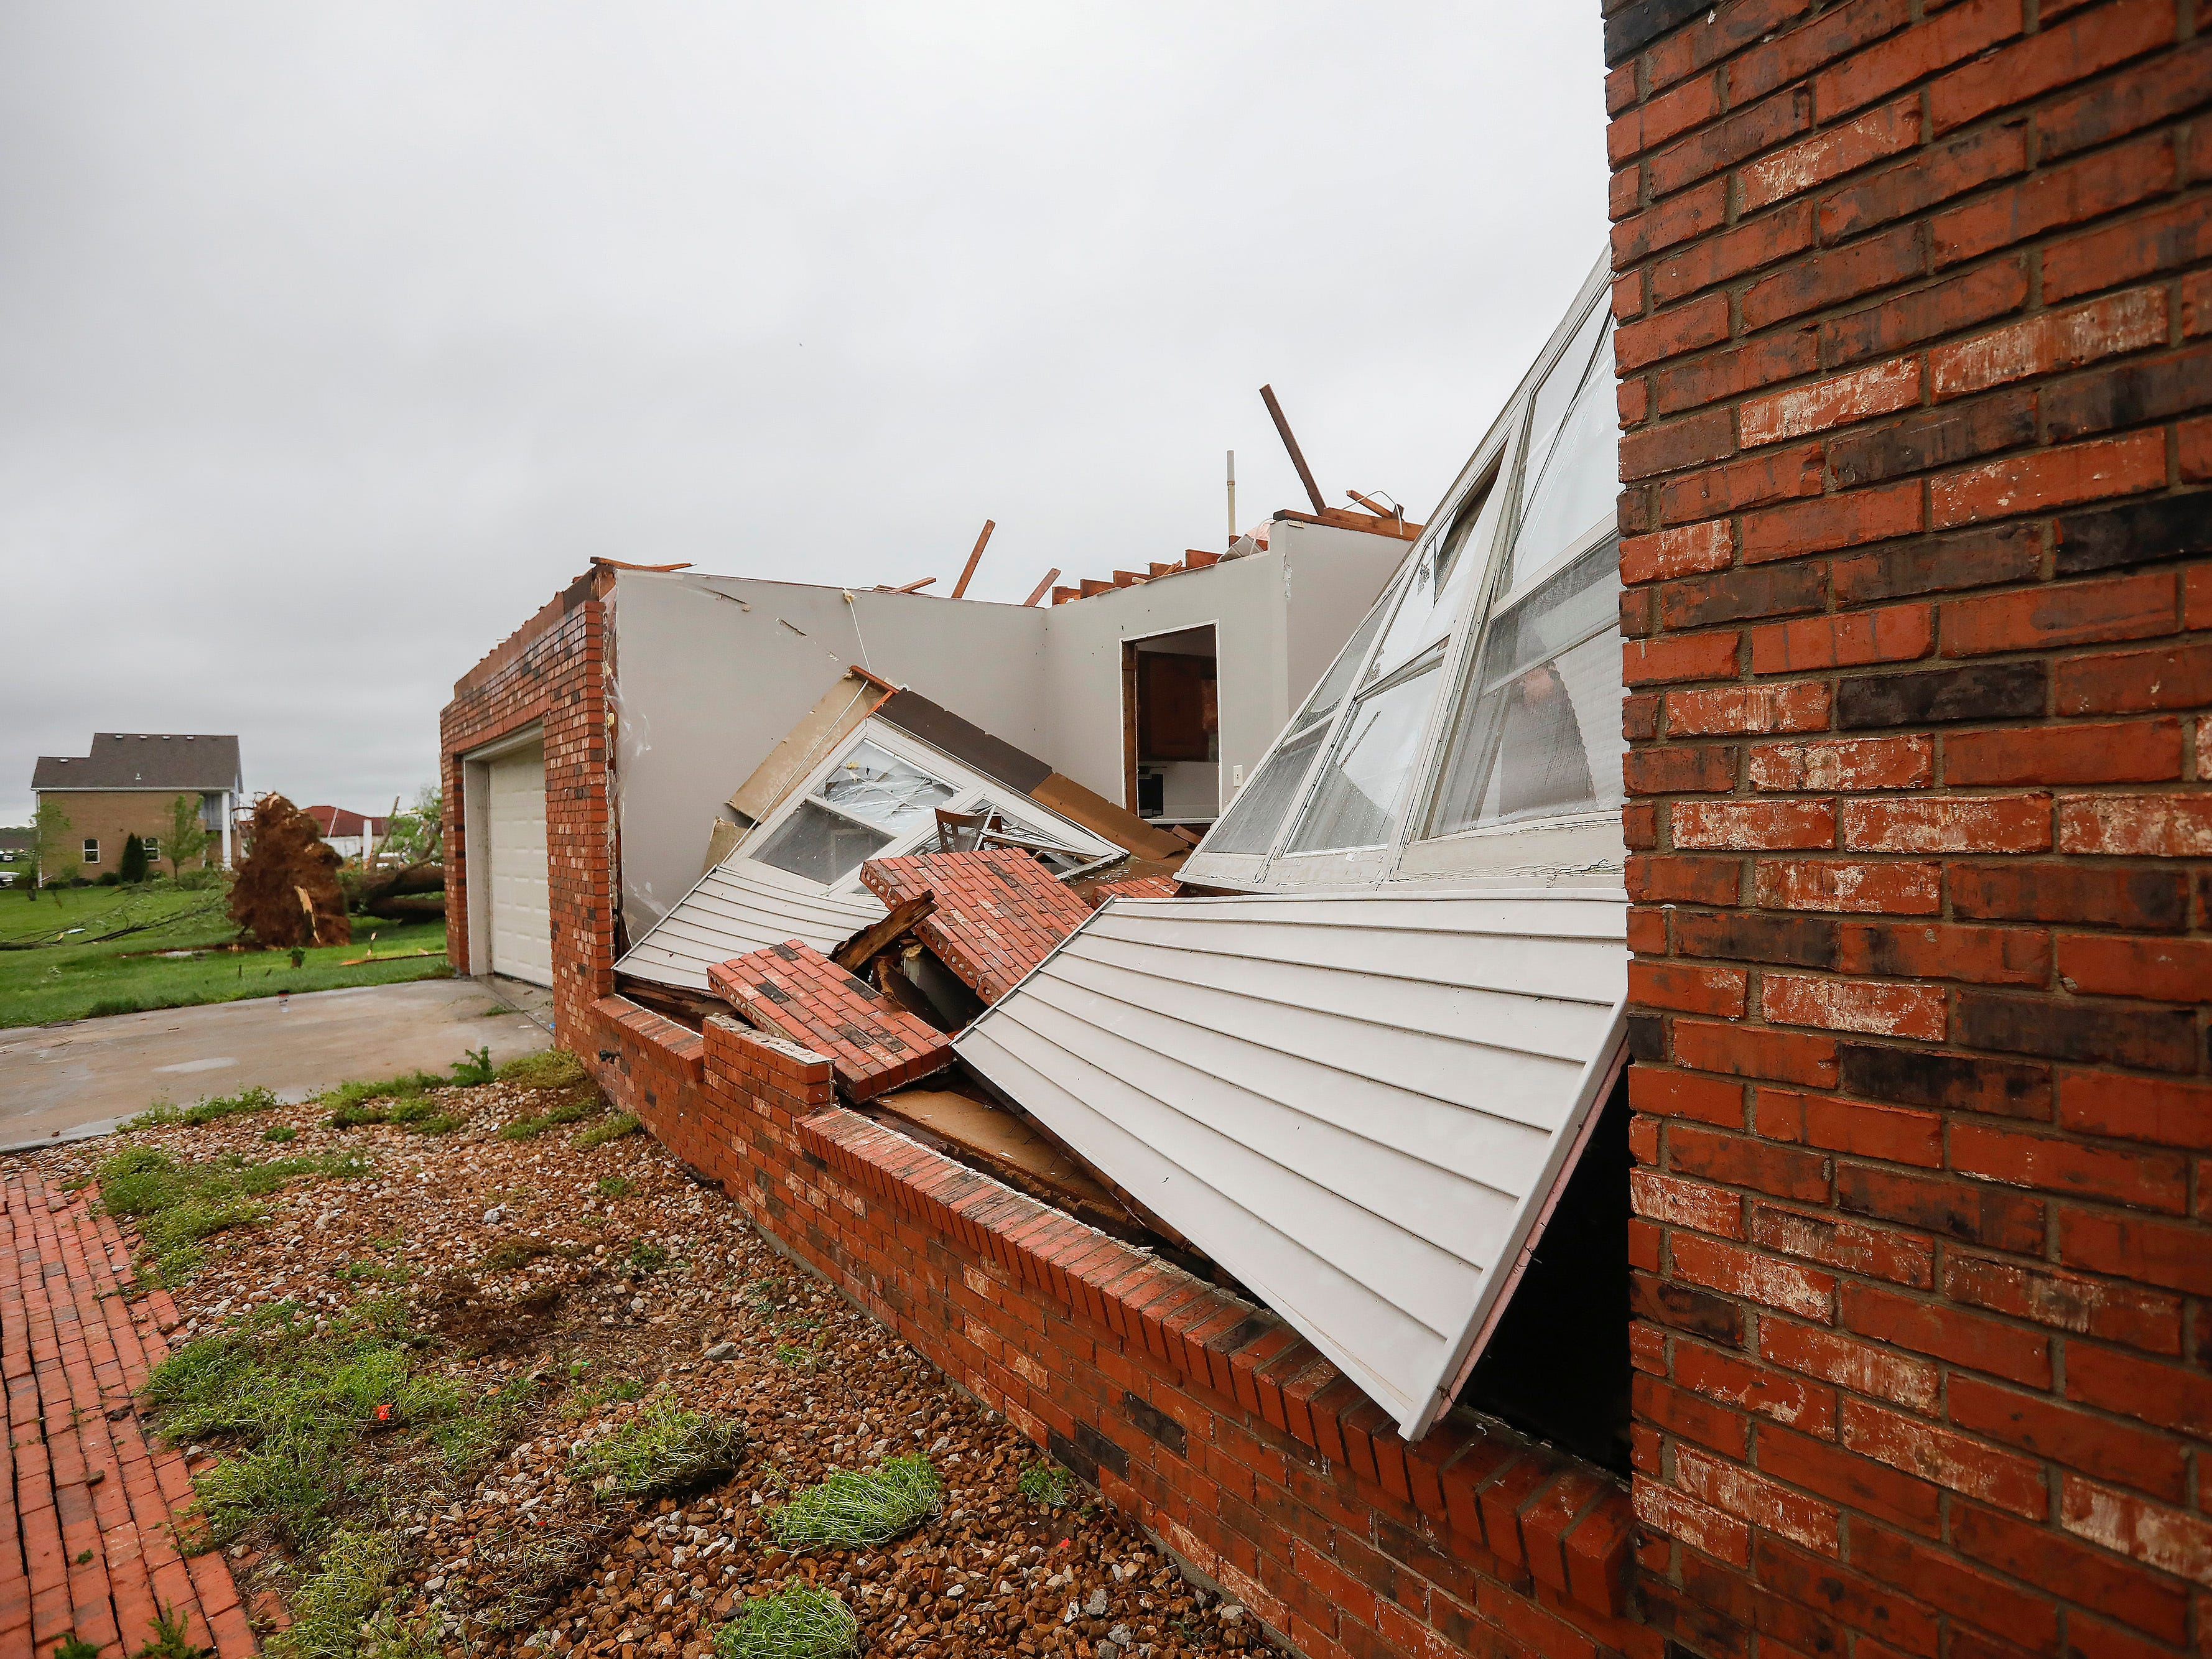 Denton Wilson's home was heavily damaged by a tornado that hit Ozark on Tuesday, April 30, 2019, but he and his family were unharmed.